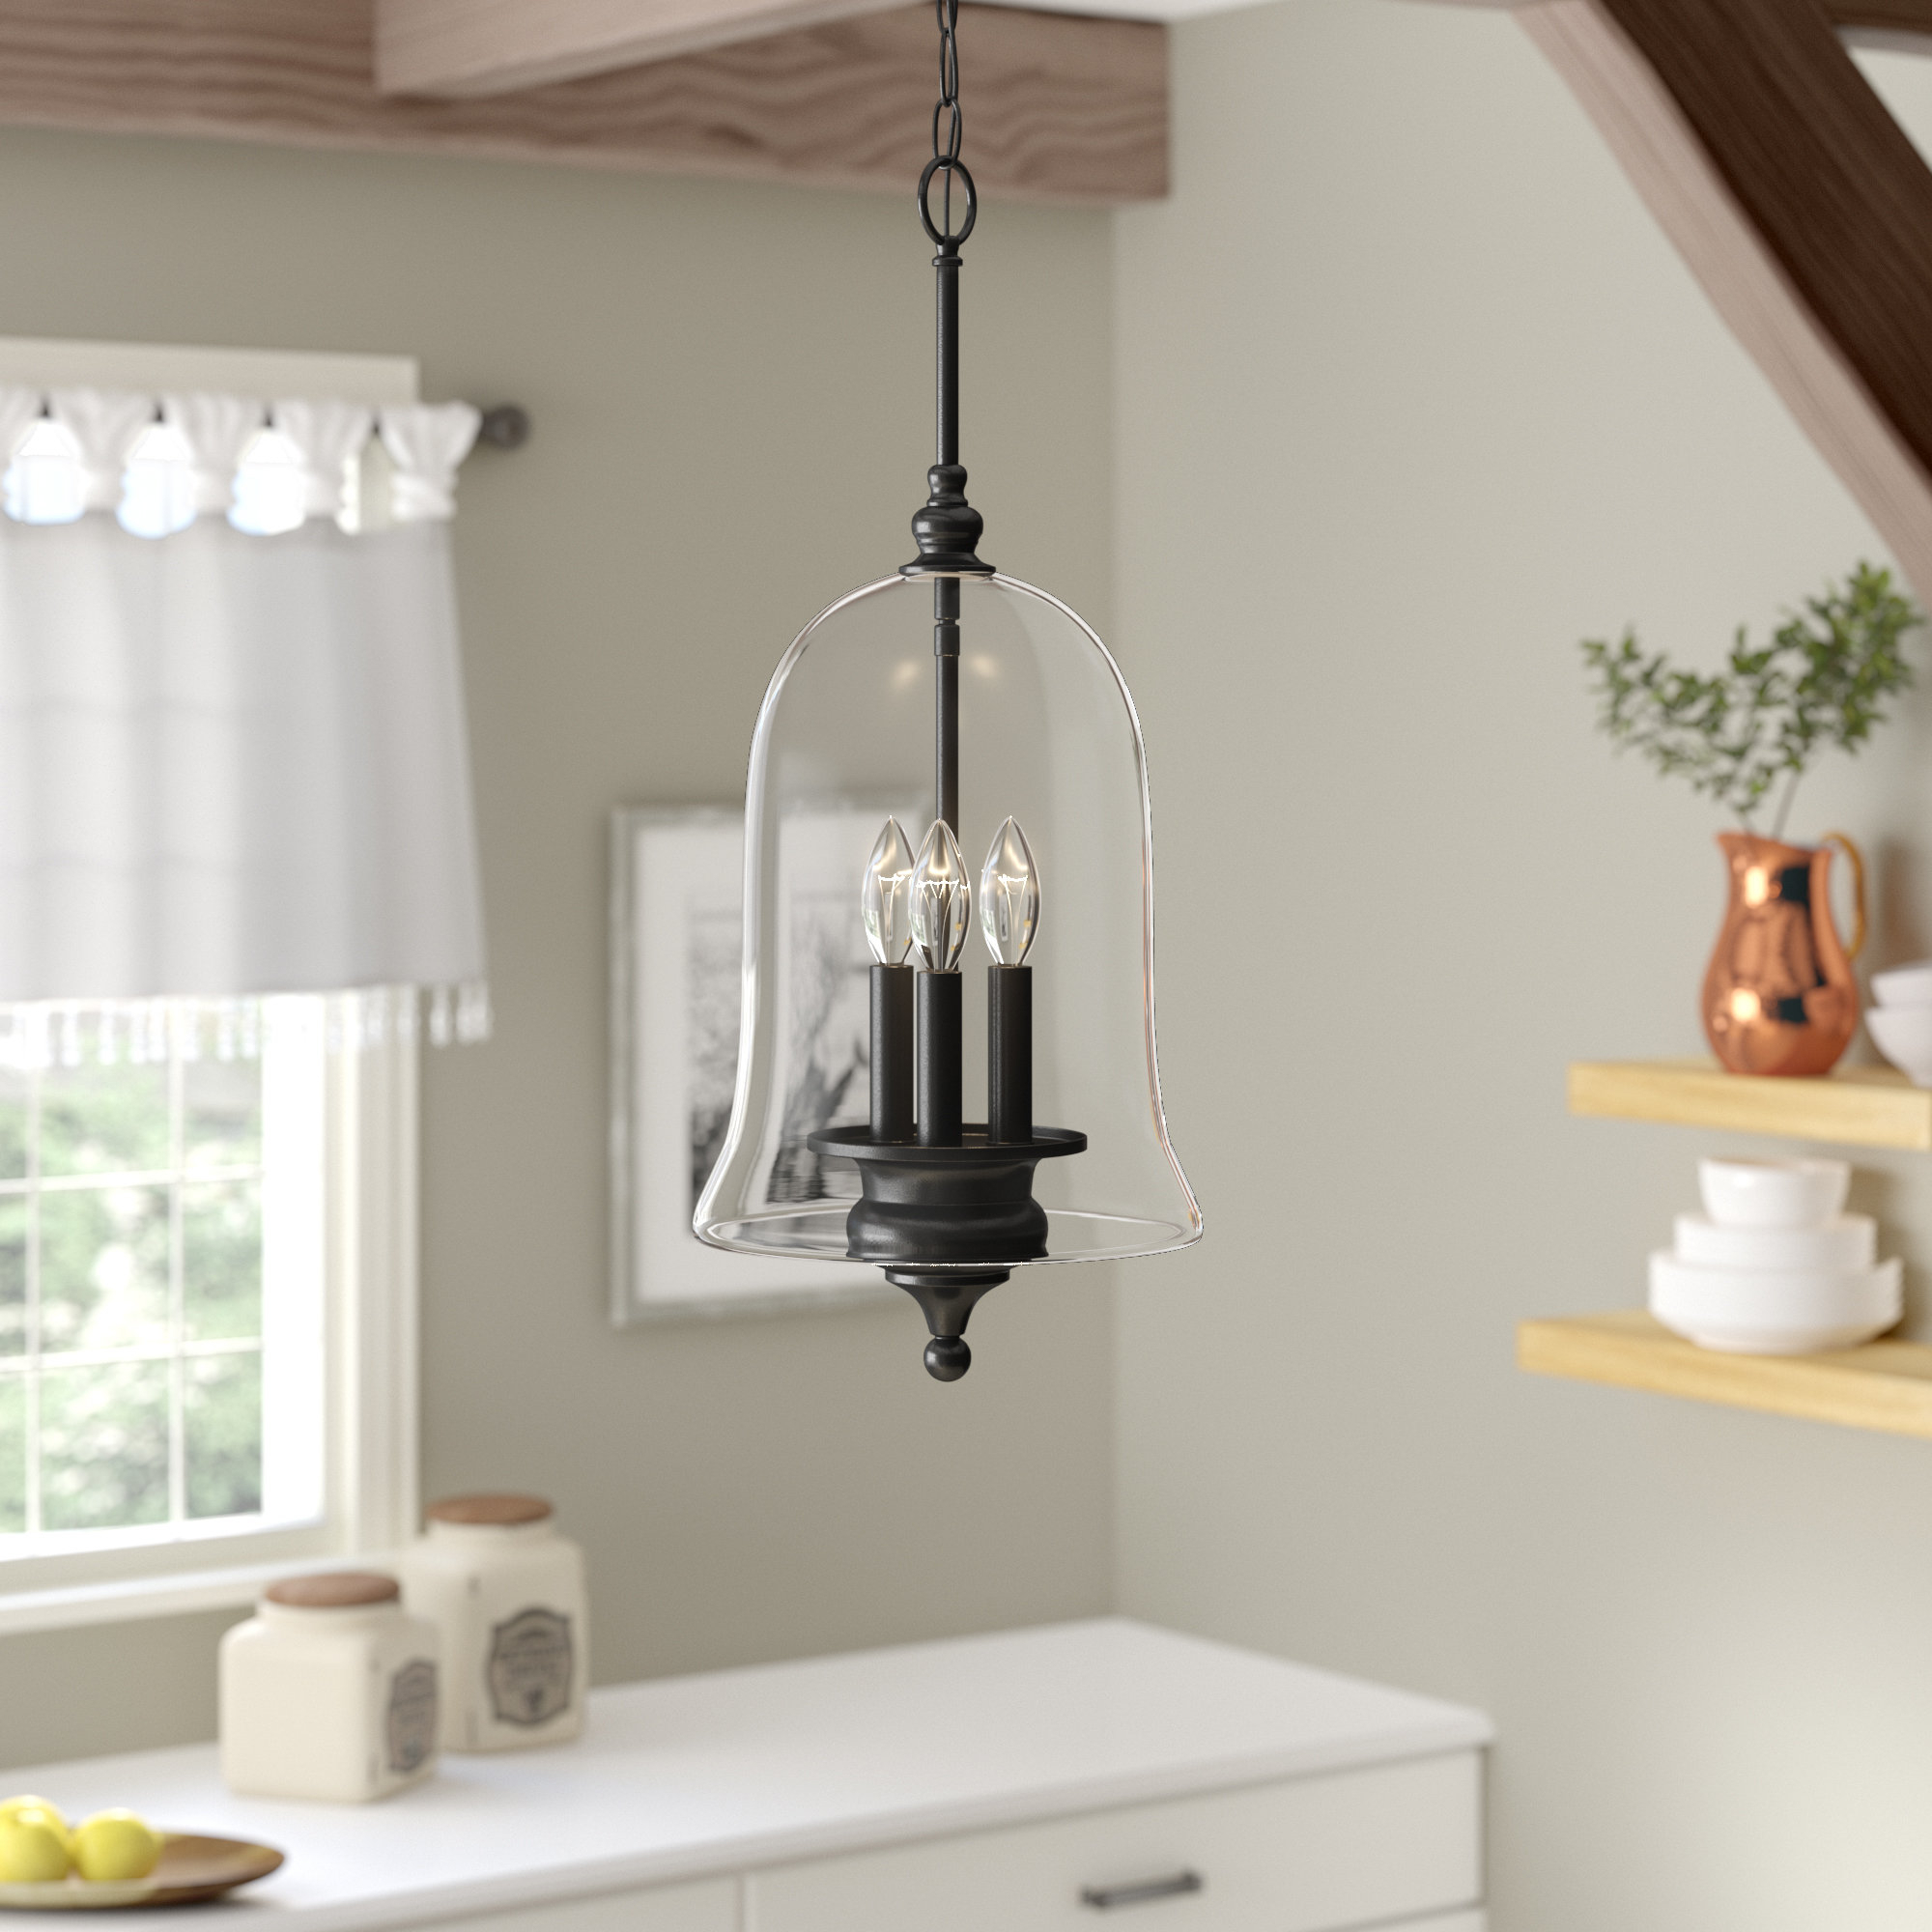 Youngberg 3 Light Single Bell Pendant Throughout Fashionable Dirksen 3 Light Single Cylinder Chandeliers (View 20 of 20)